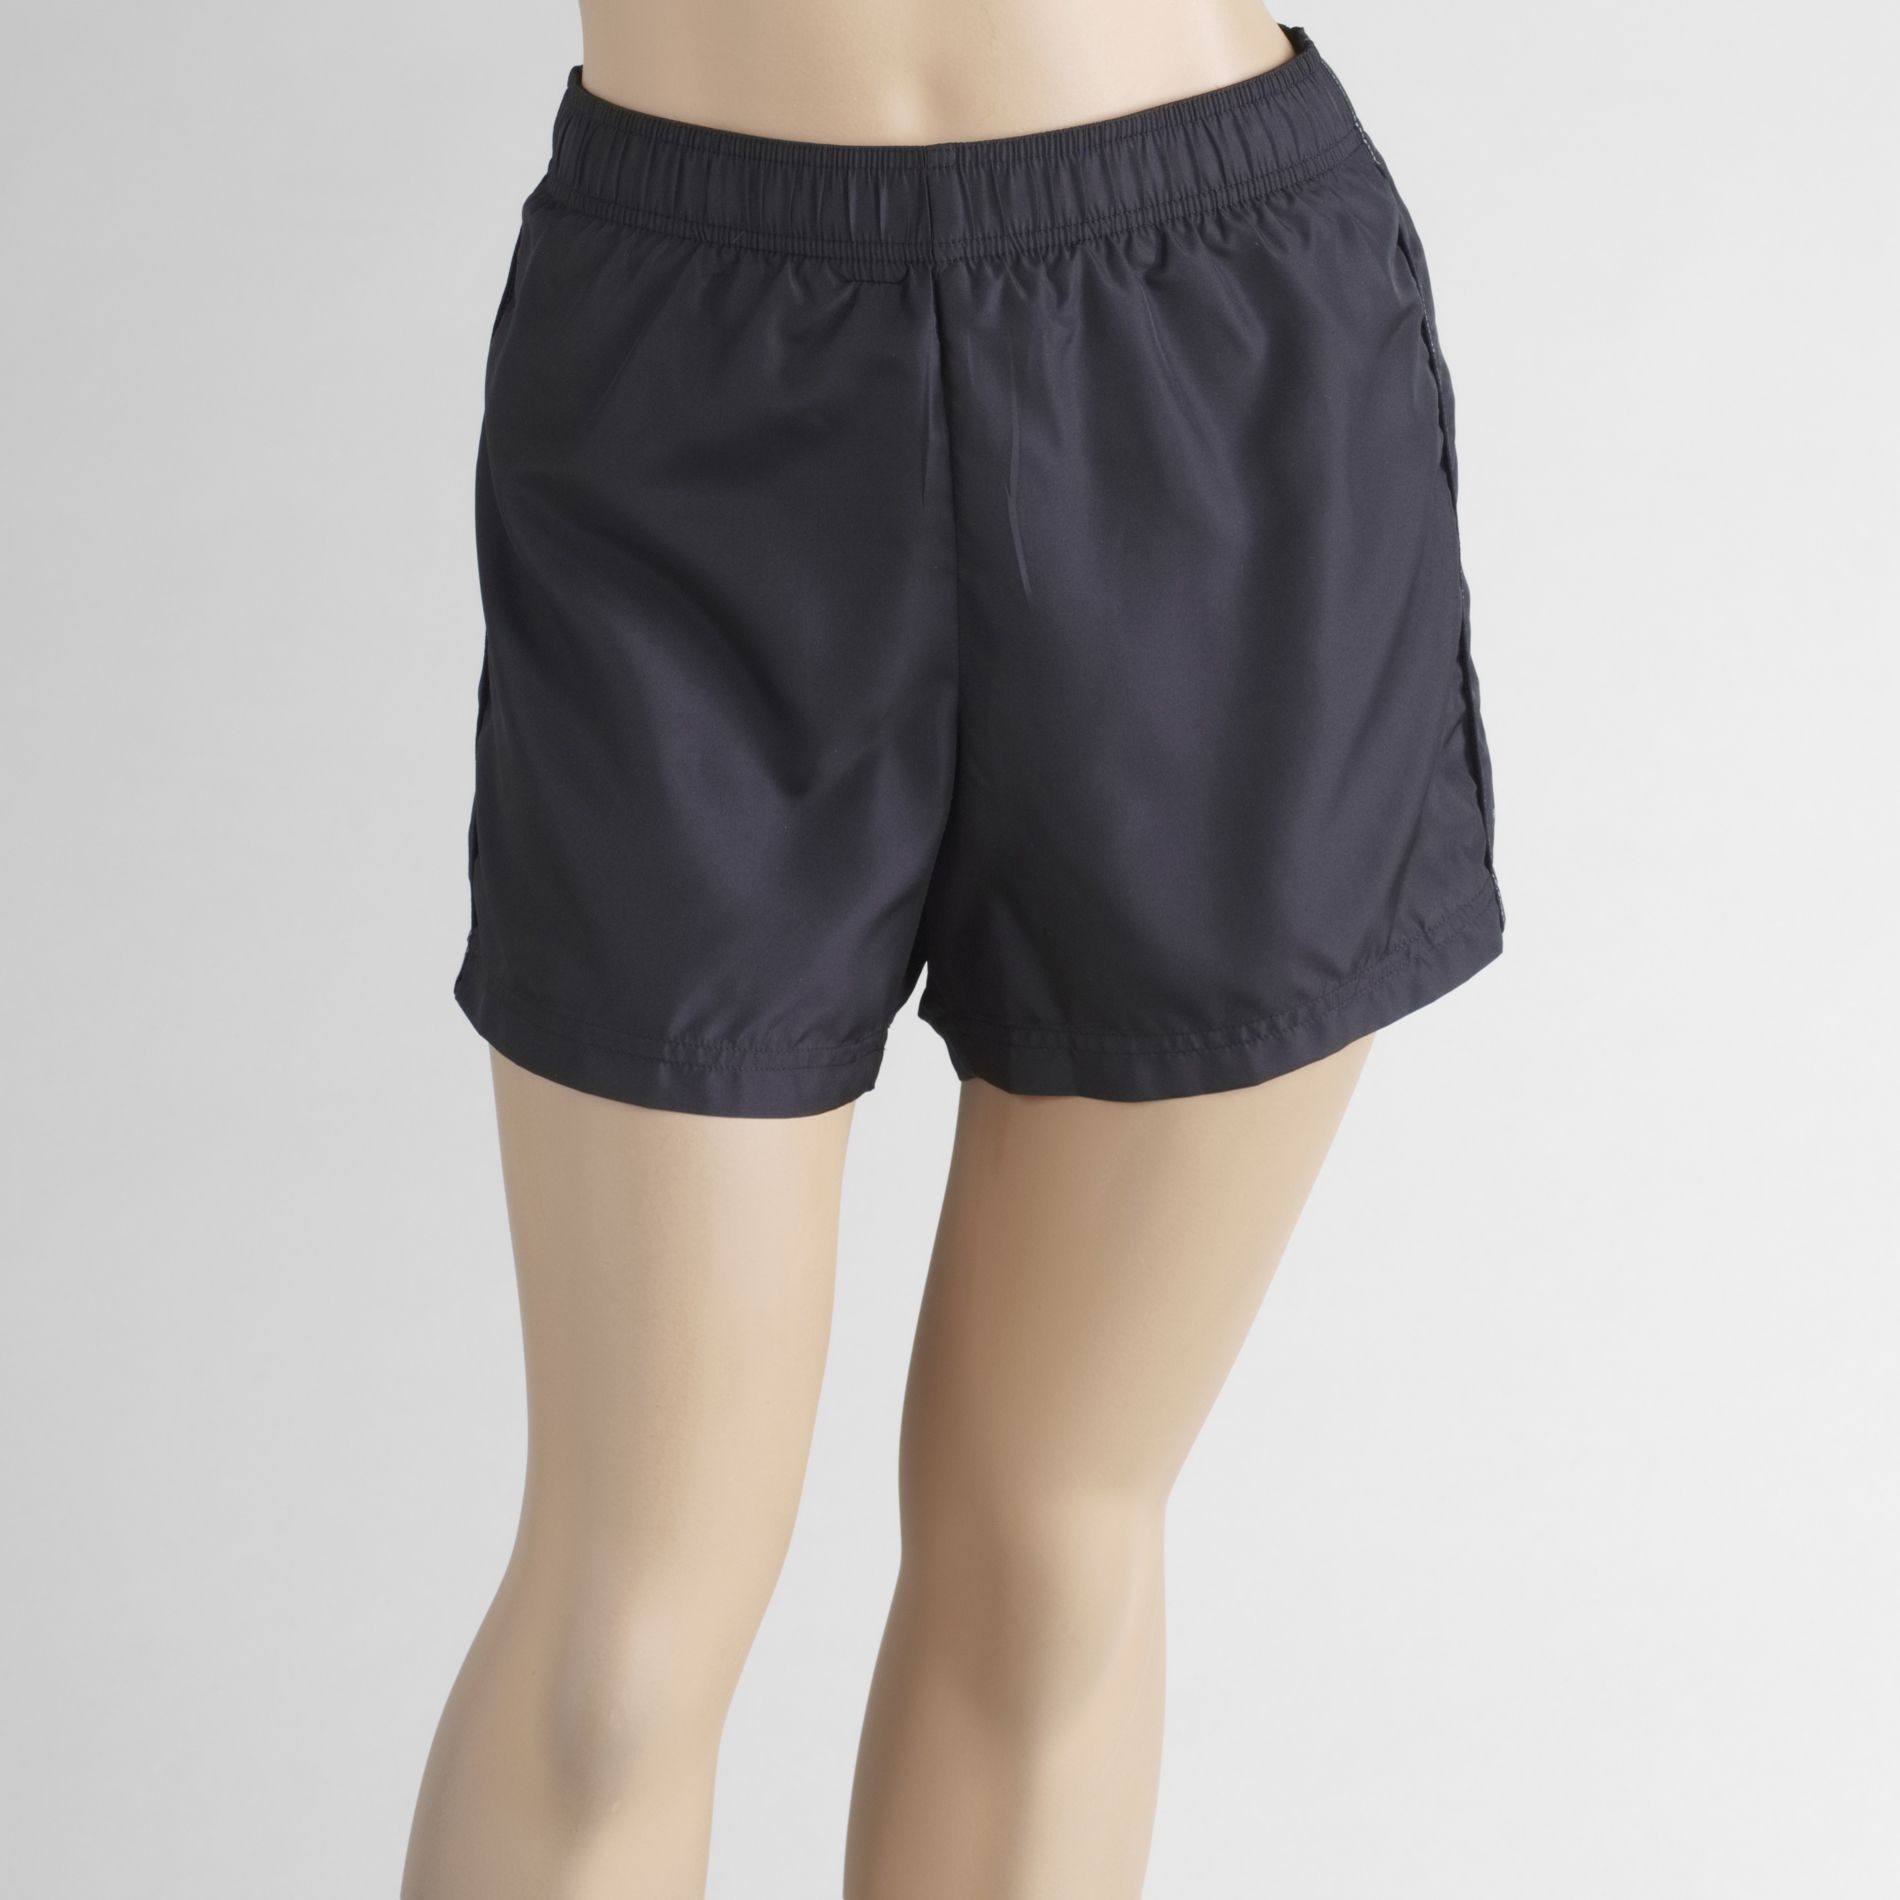 Zero Xposur Women's Kaya Woven Shorts at Kmart.com